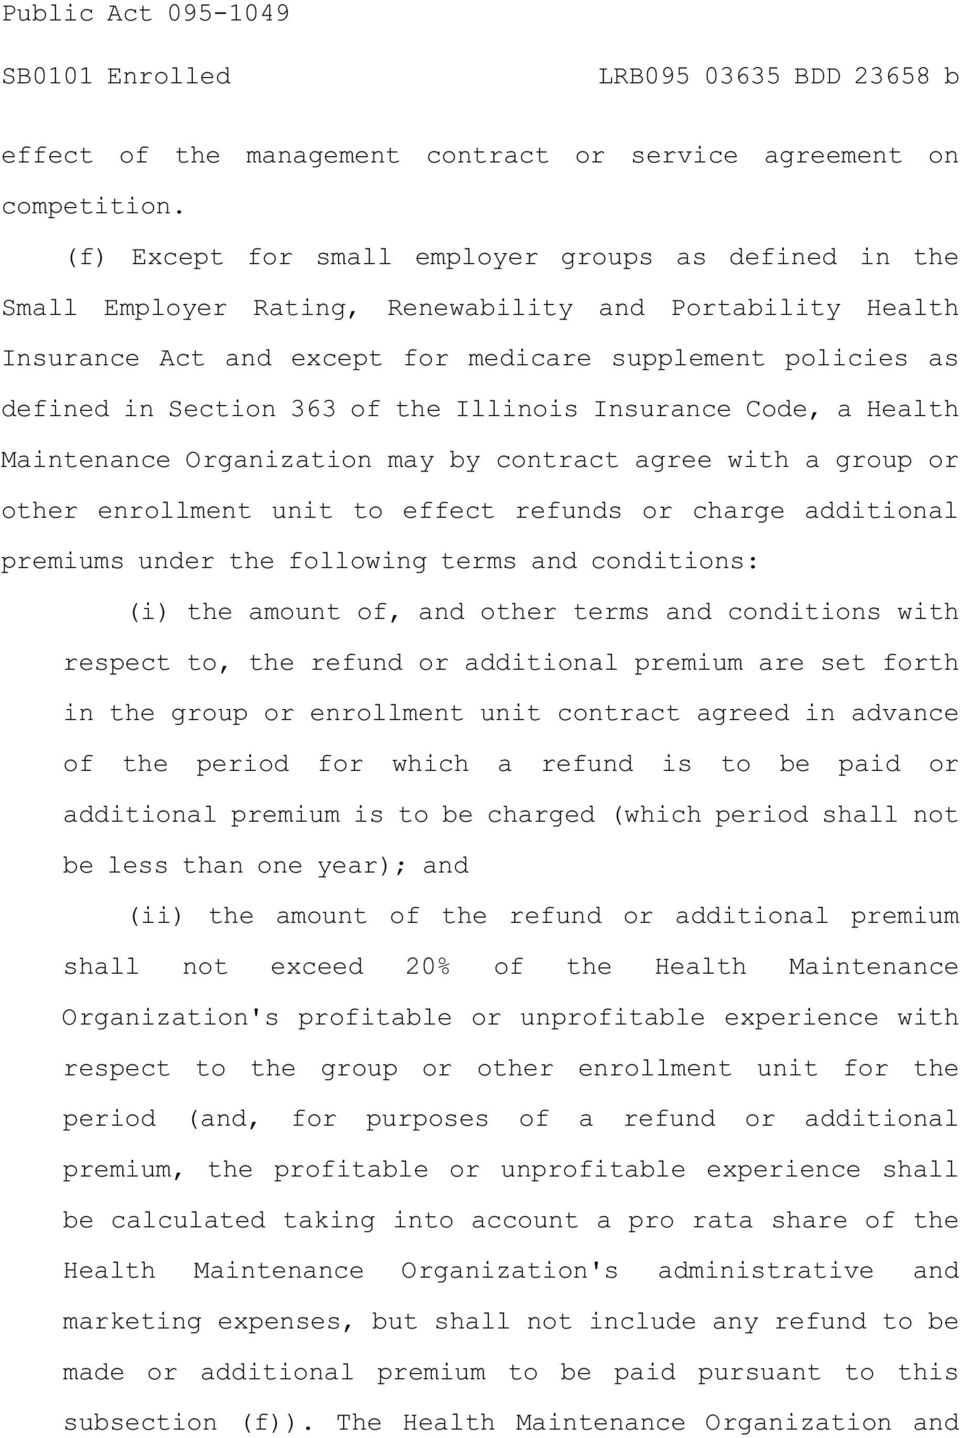 of the Illinois Insurance Code, a Health Maintenance Organization may by contract agree with a group or other enrollment unit to effect refunds or charge additional premiums under the following terms